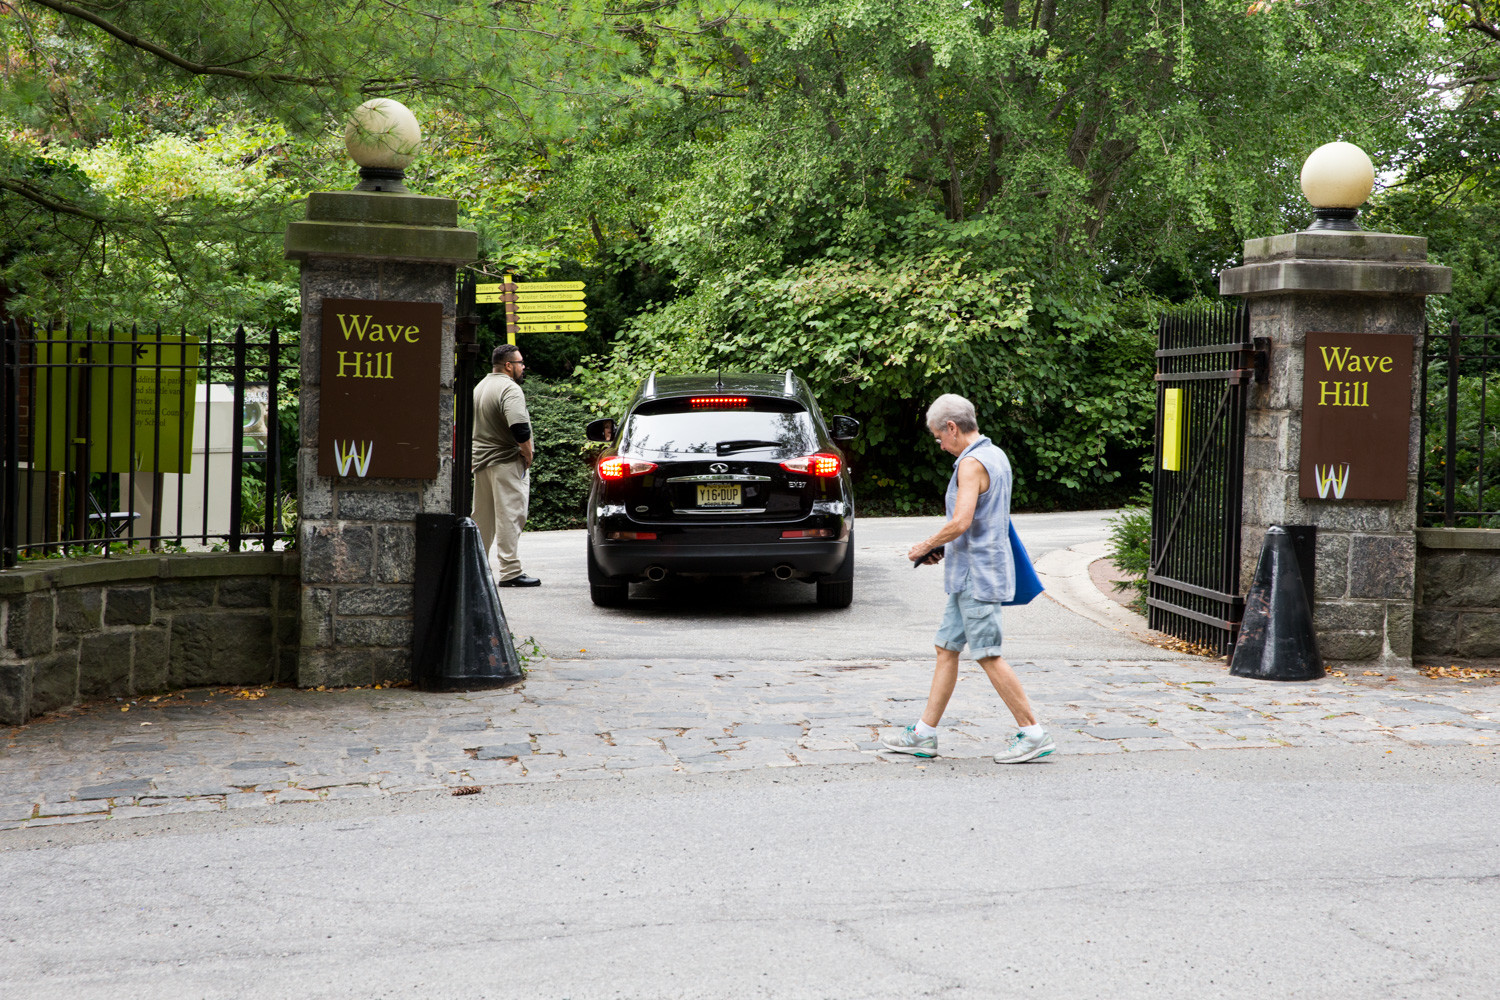 A pedestrian approaches Wave Hill's main entrance as a car pulls in during the summer months. Wave Hill is currently in the process of designing a pedestrian entrance south of its current entrance.